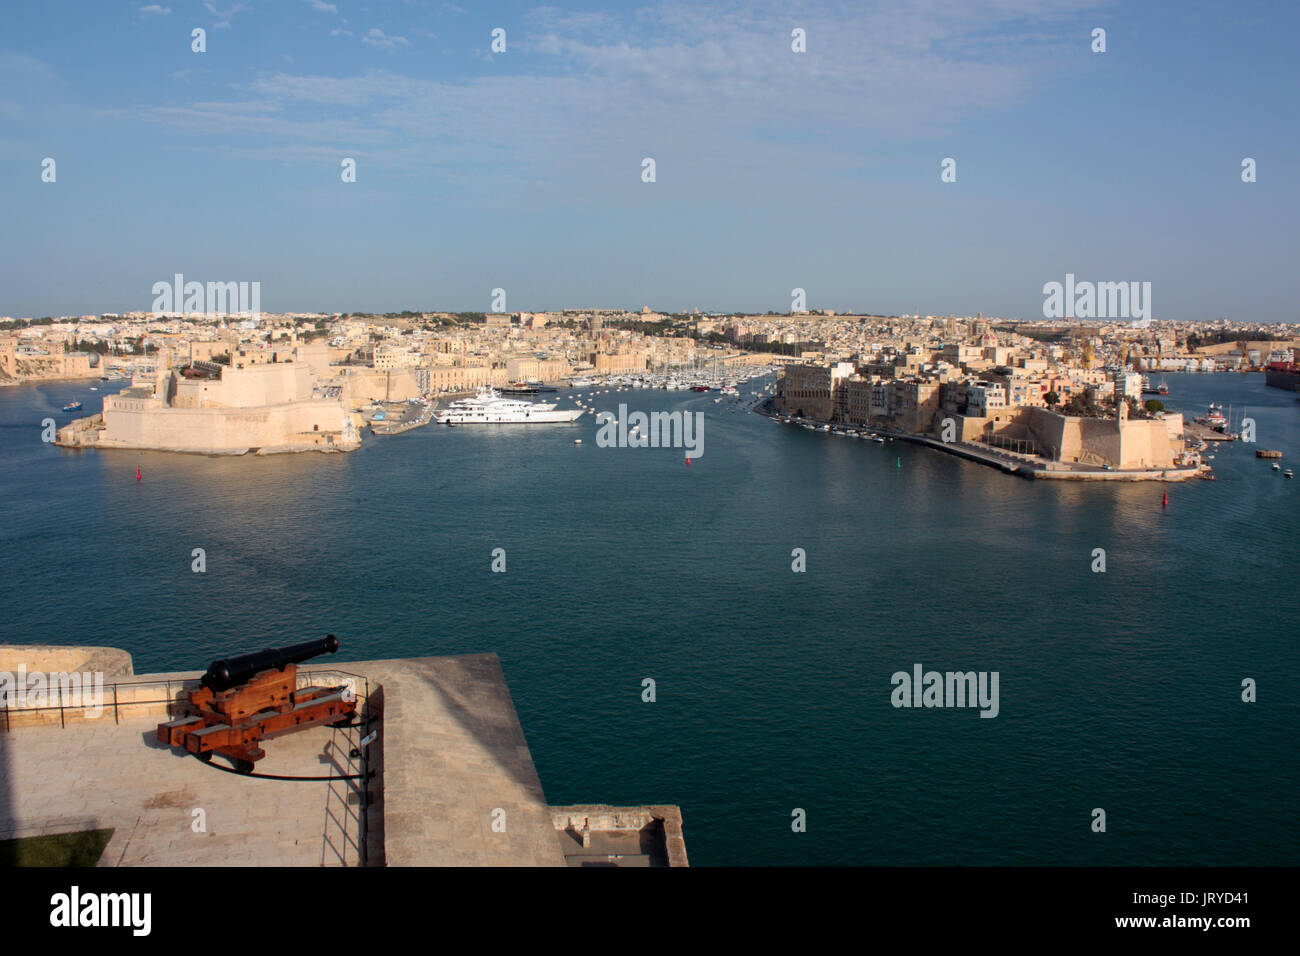 The Grand Harbour of Malta, a historic Mediterranean travel destination. View from the Upper Barrakka, Valletta. Urban Maltese landscape and history. - Stock Image